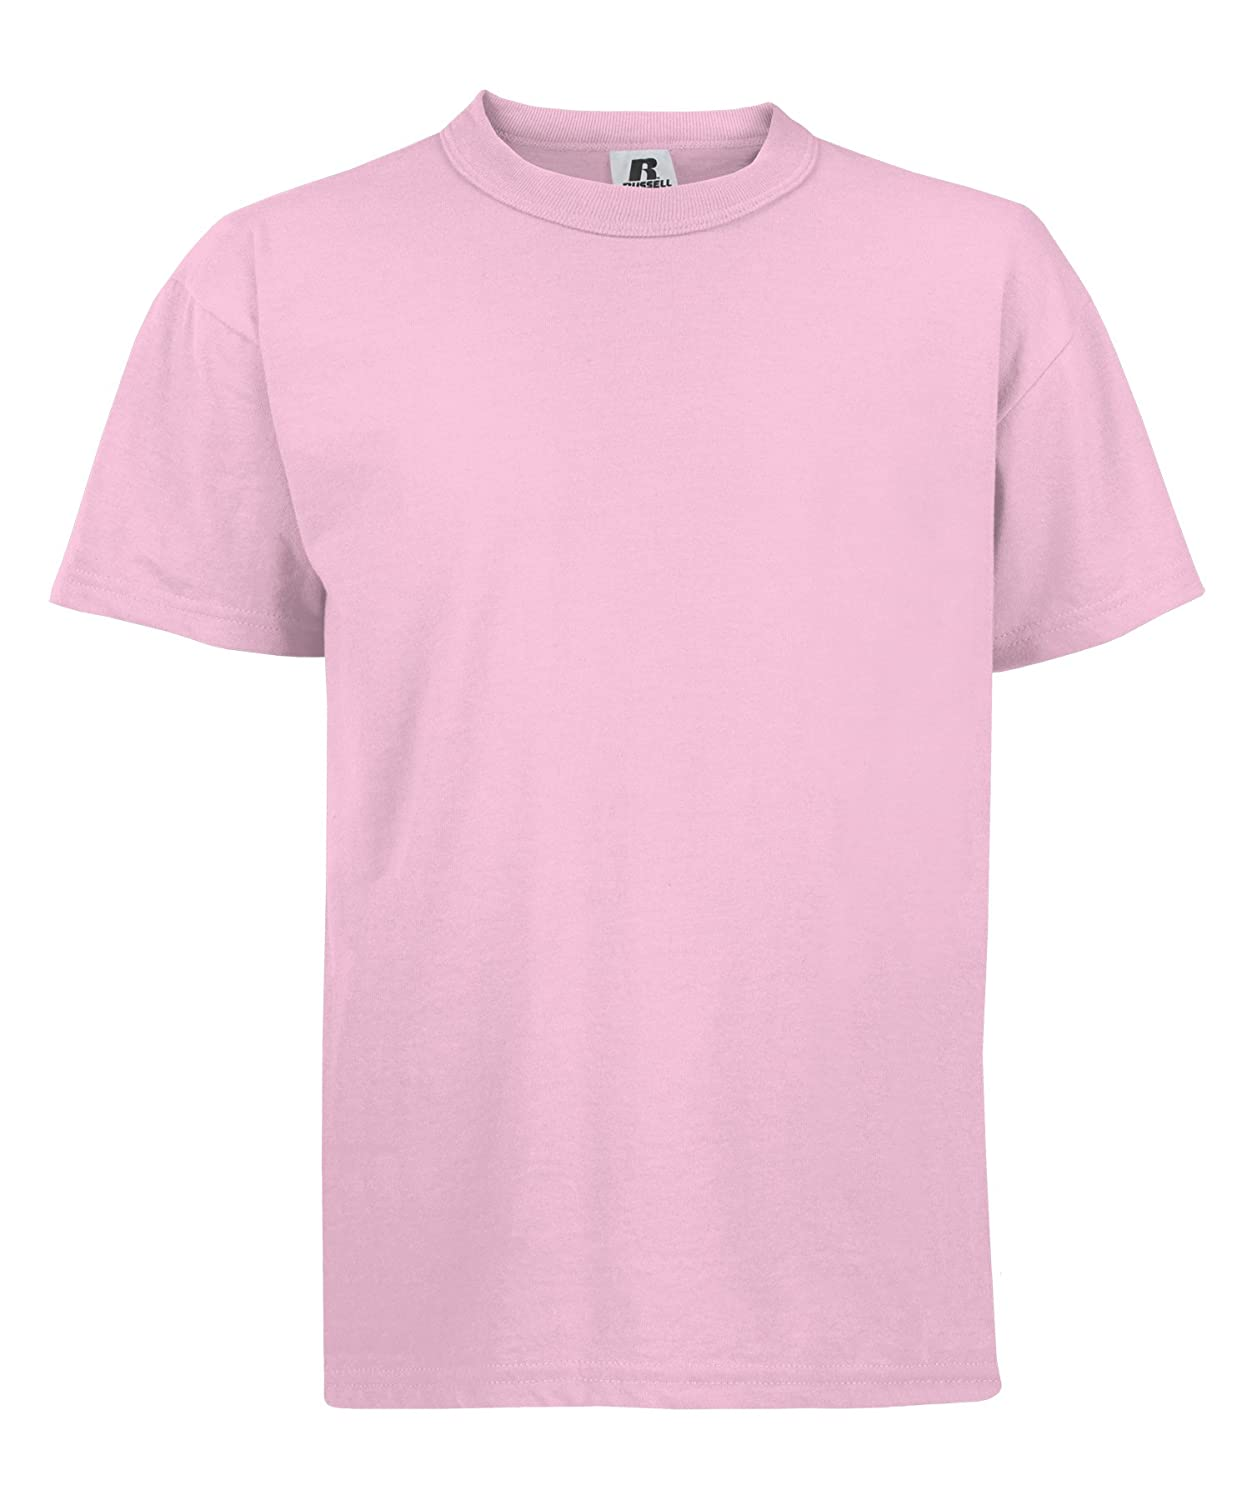 Pink Russell Youth Crossover TShirt x-small/